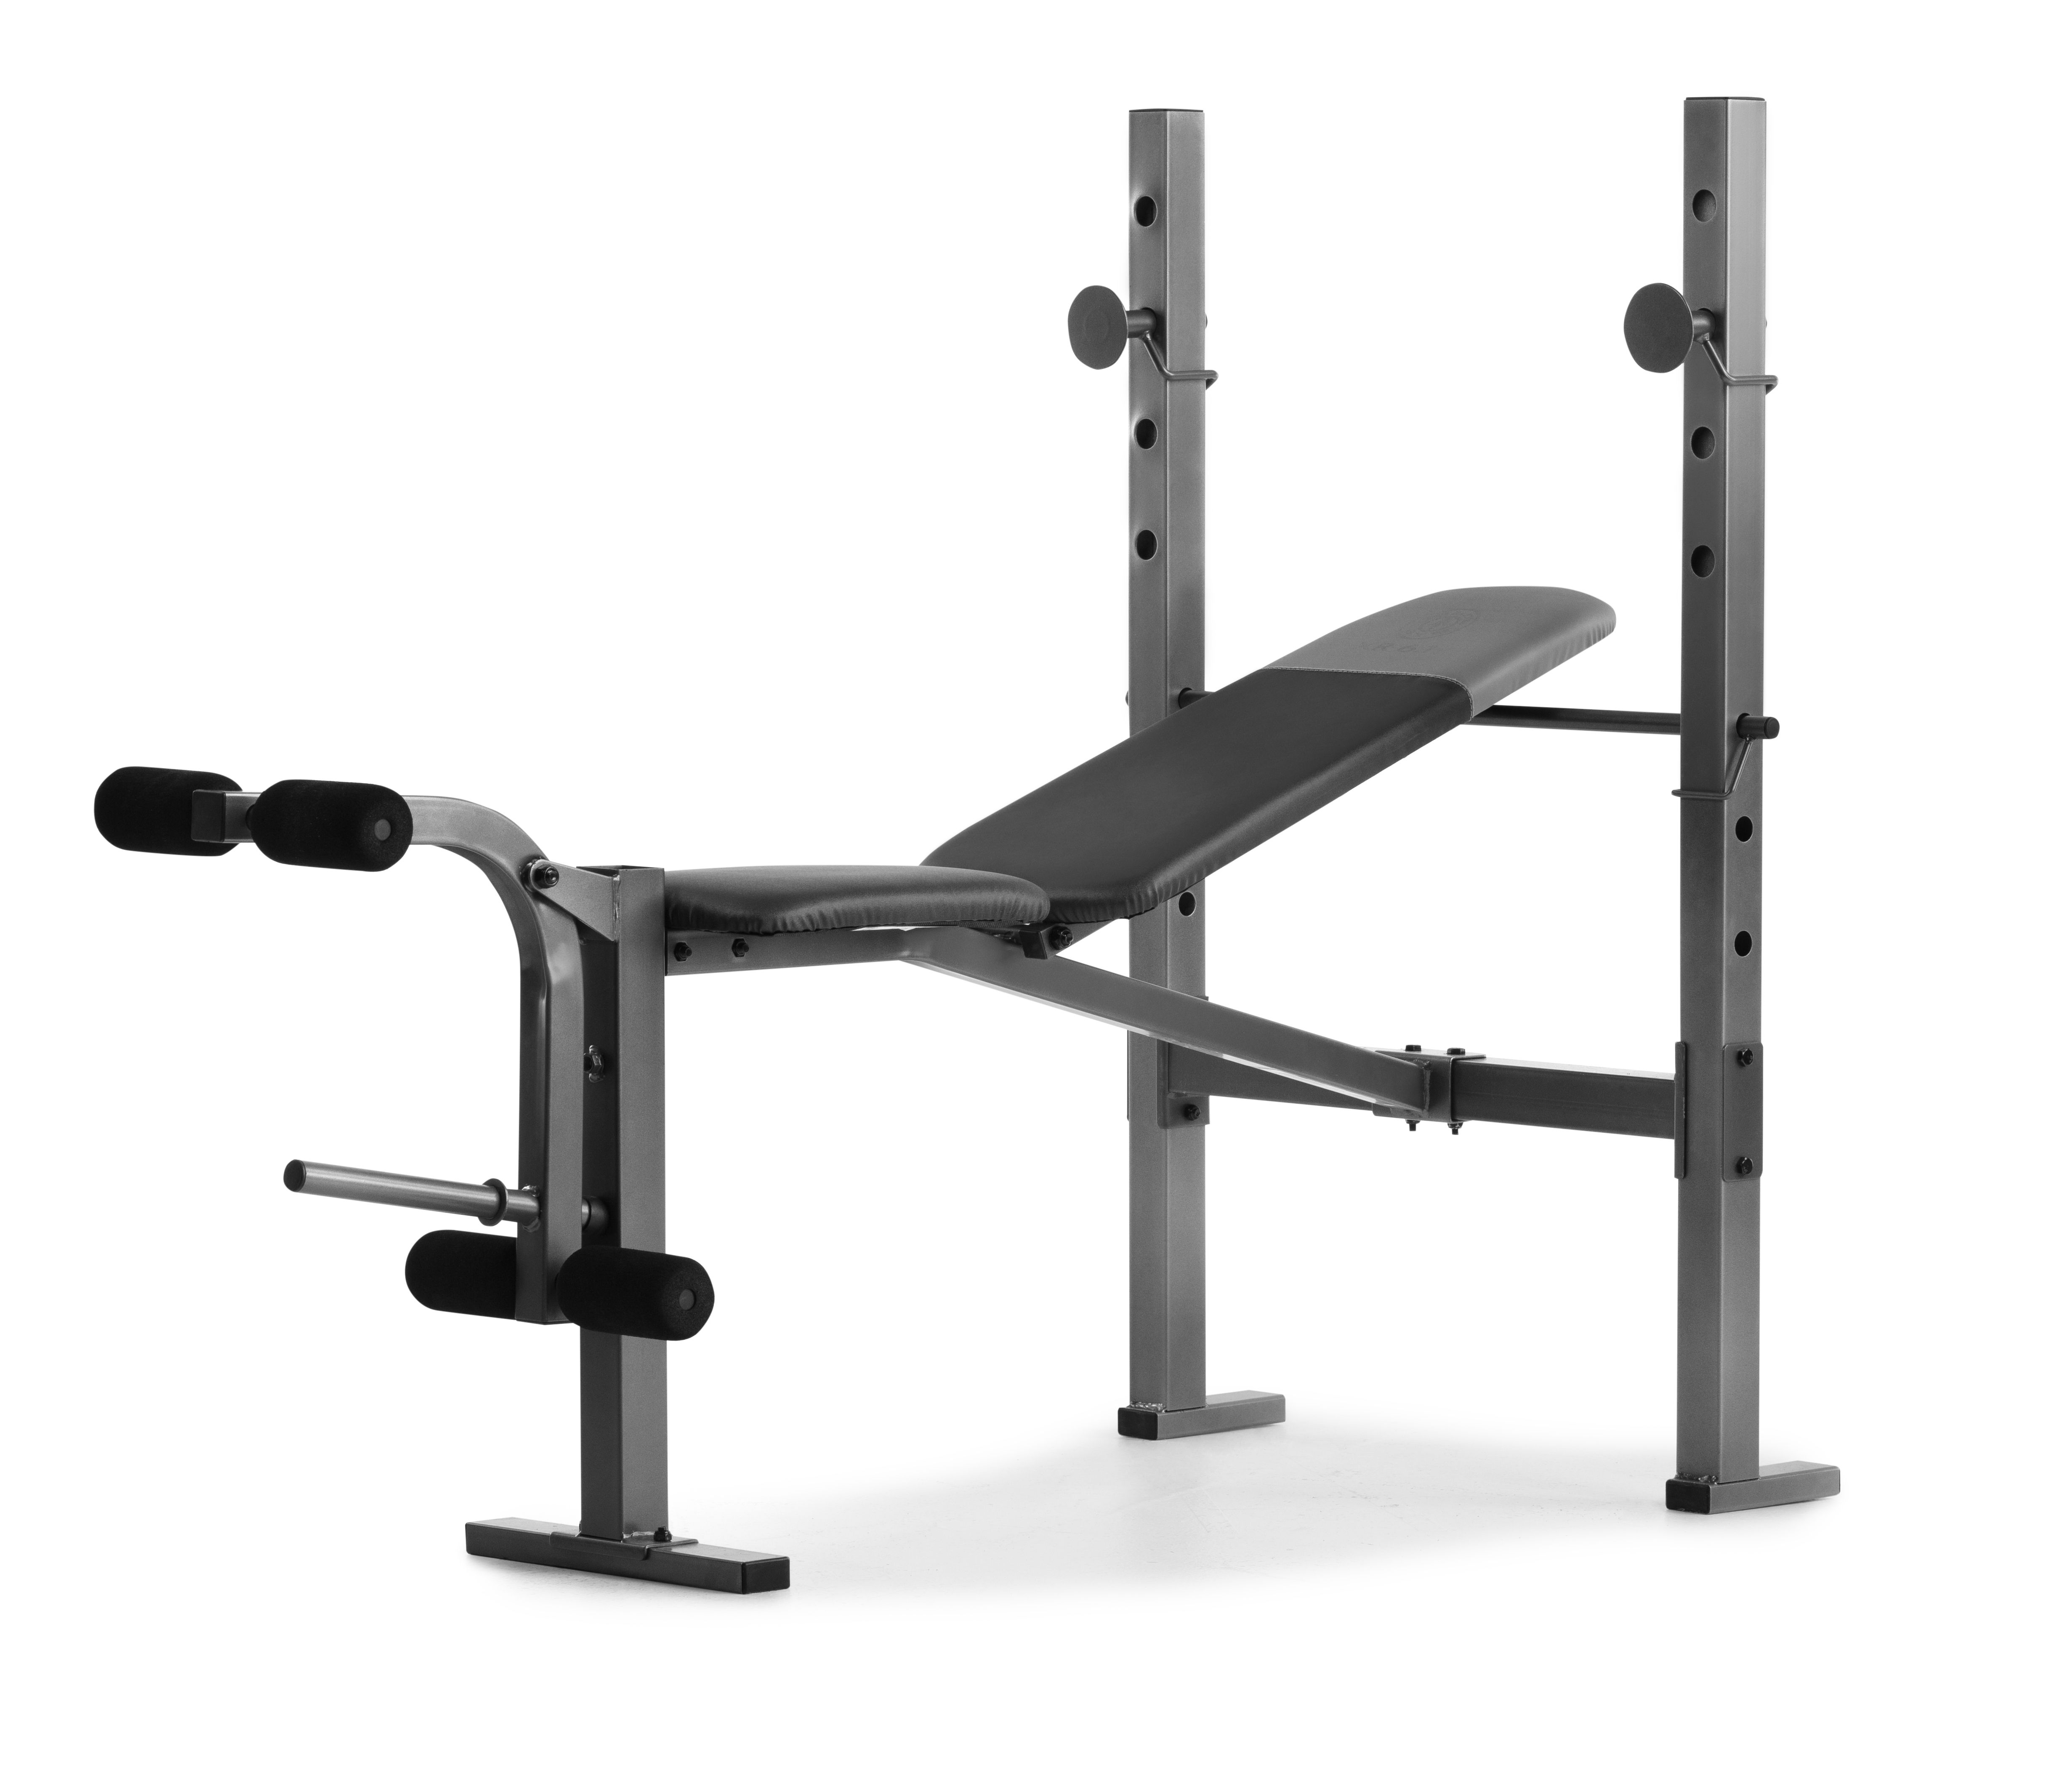 Gold S Gym Xr 6 1 Multi Position Weight Bench With Leg Developer Walmart Com Adjustable Weight Bench Weight Benches Bench Workout